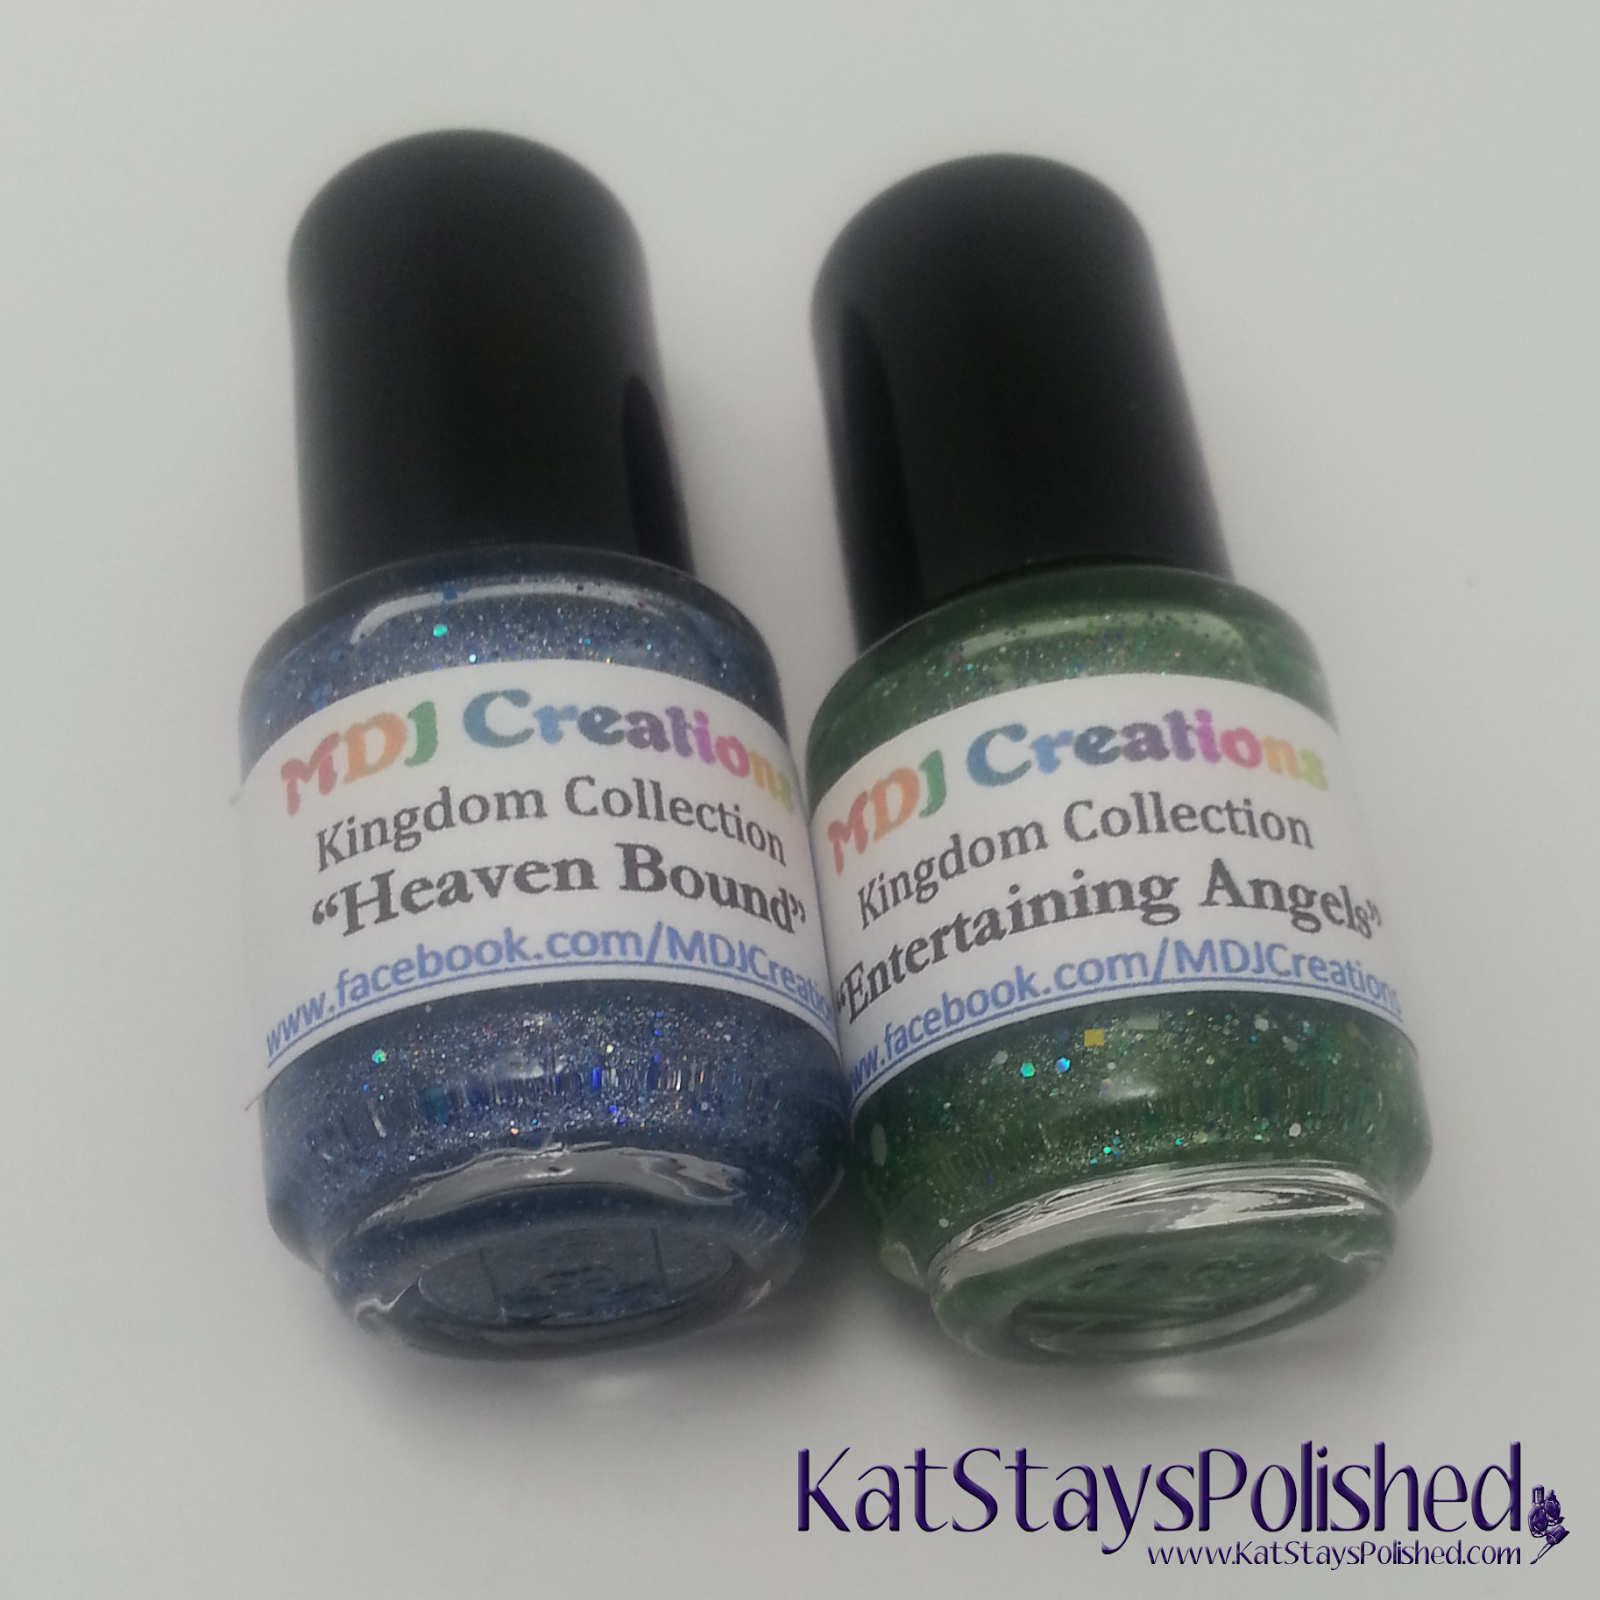 MDJ Creations - Kingdom Collection | Kat Stays Polished